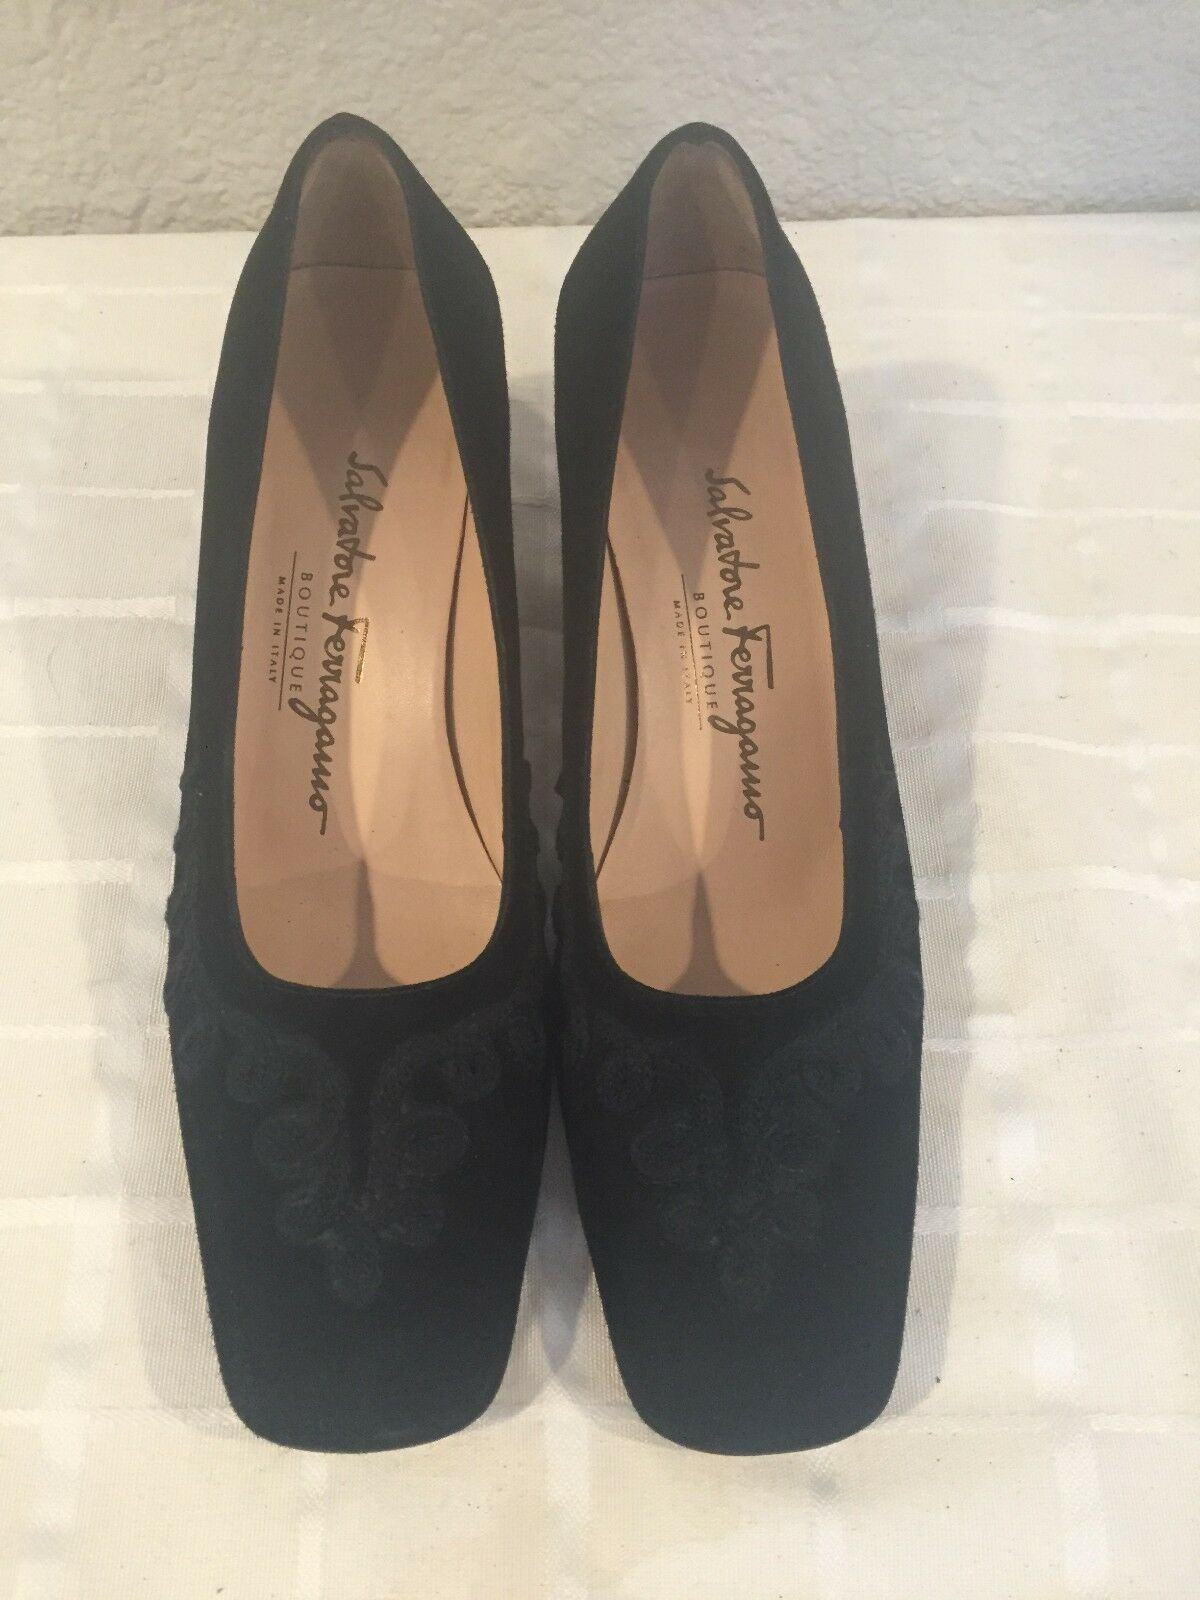 Salvatore Ferragamo Black Suede Embroidered Pumps 6.5B Made in Italy